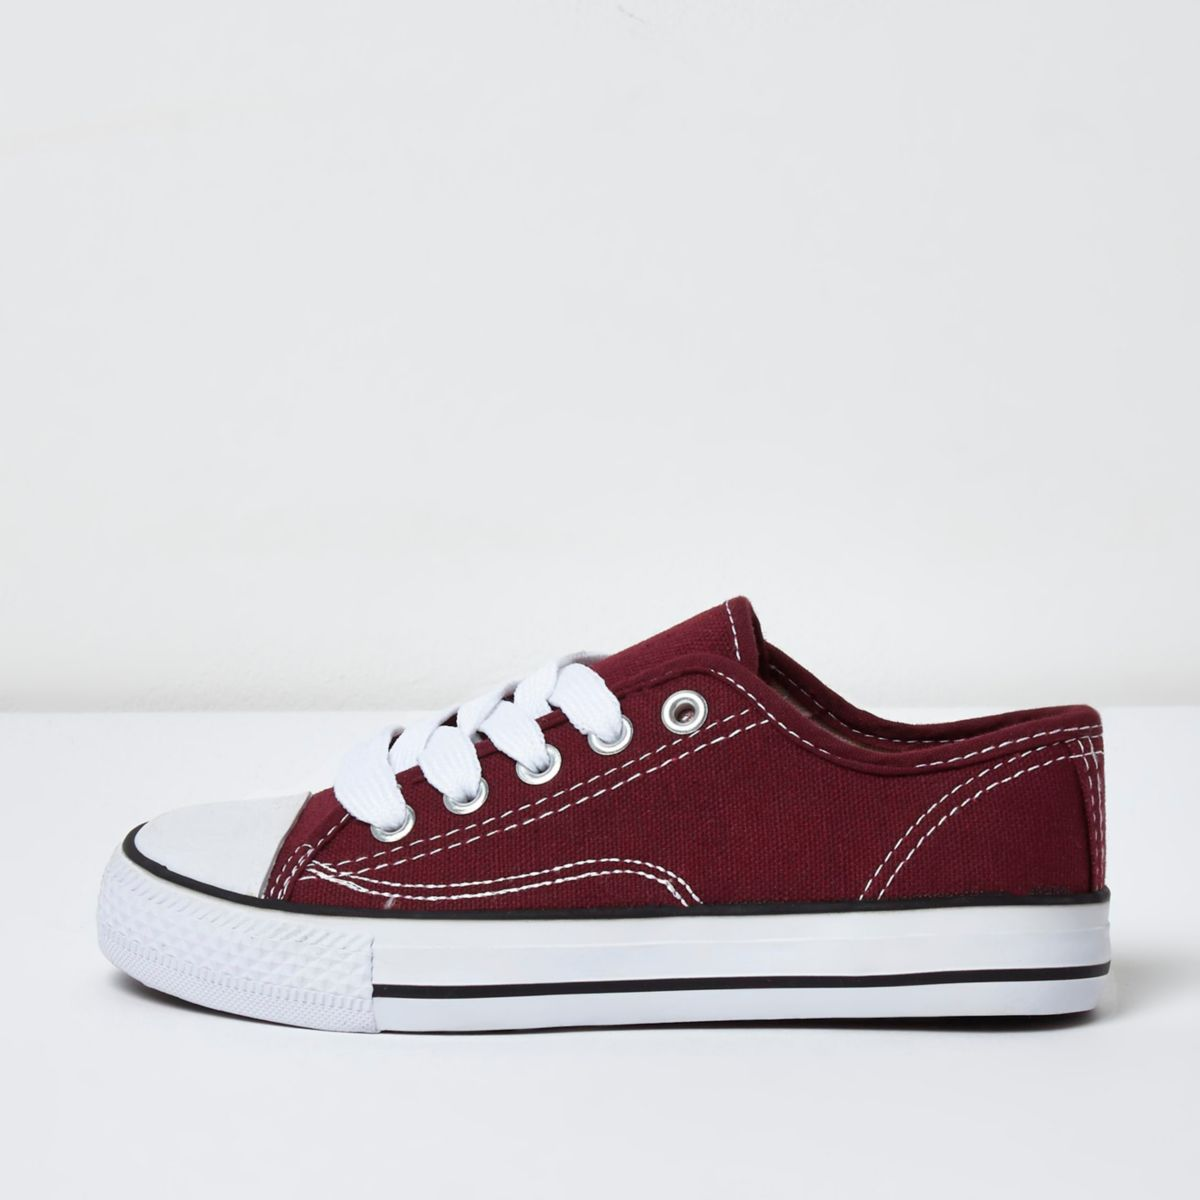 Boys red low top lace-up plimsolls